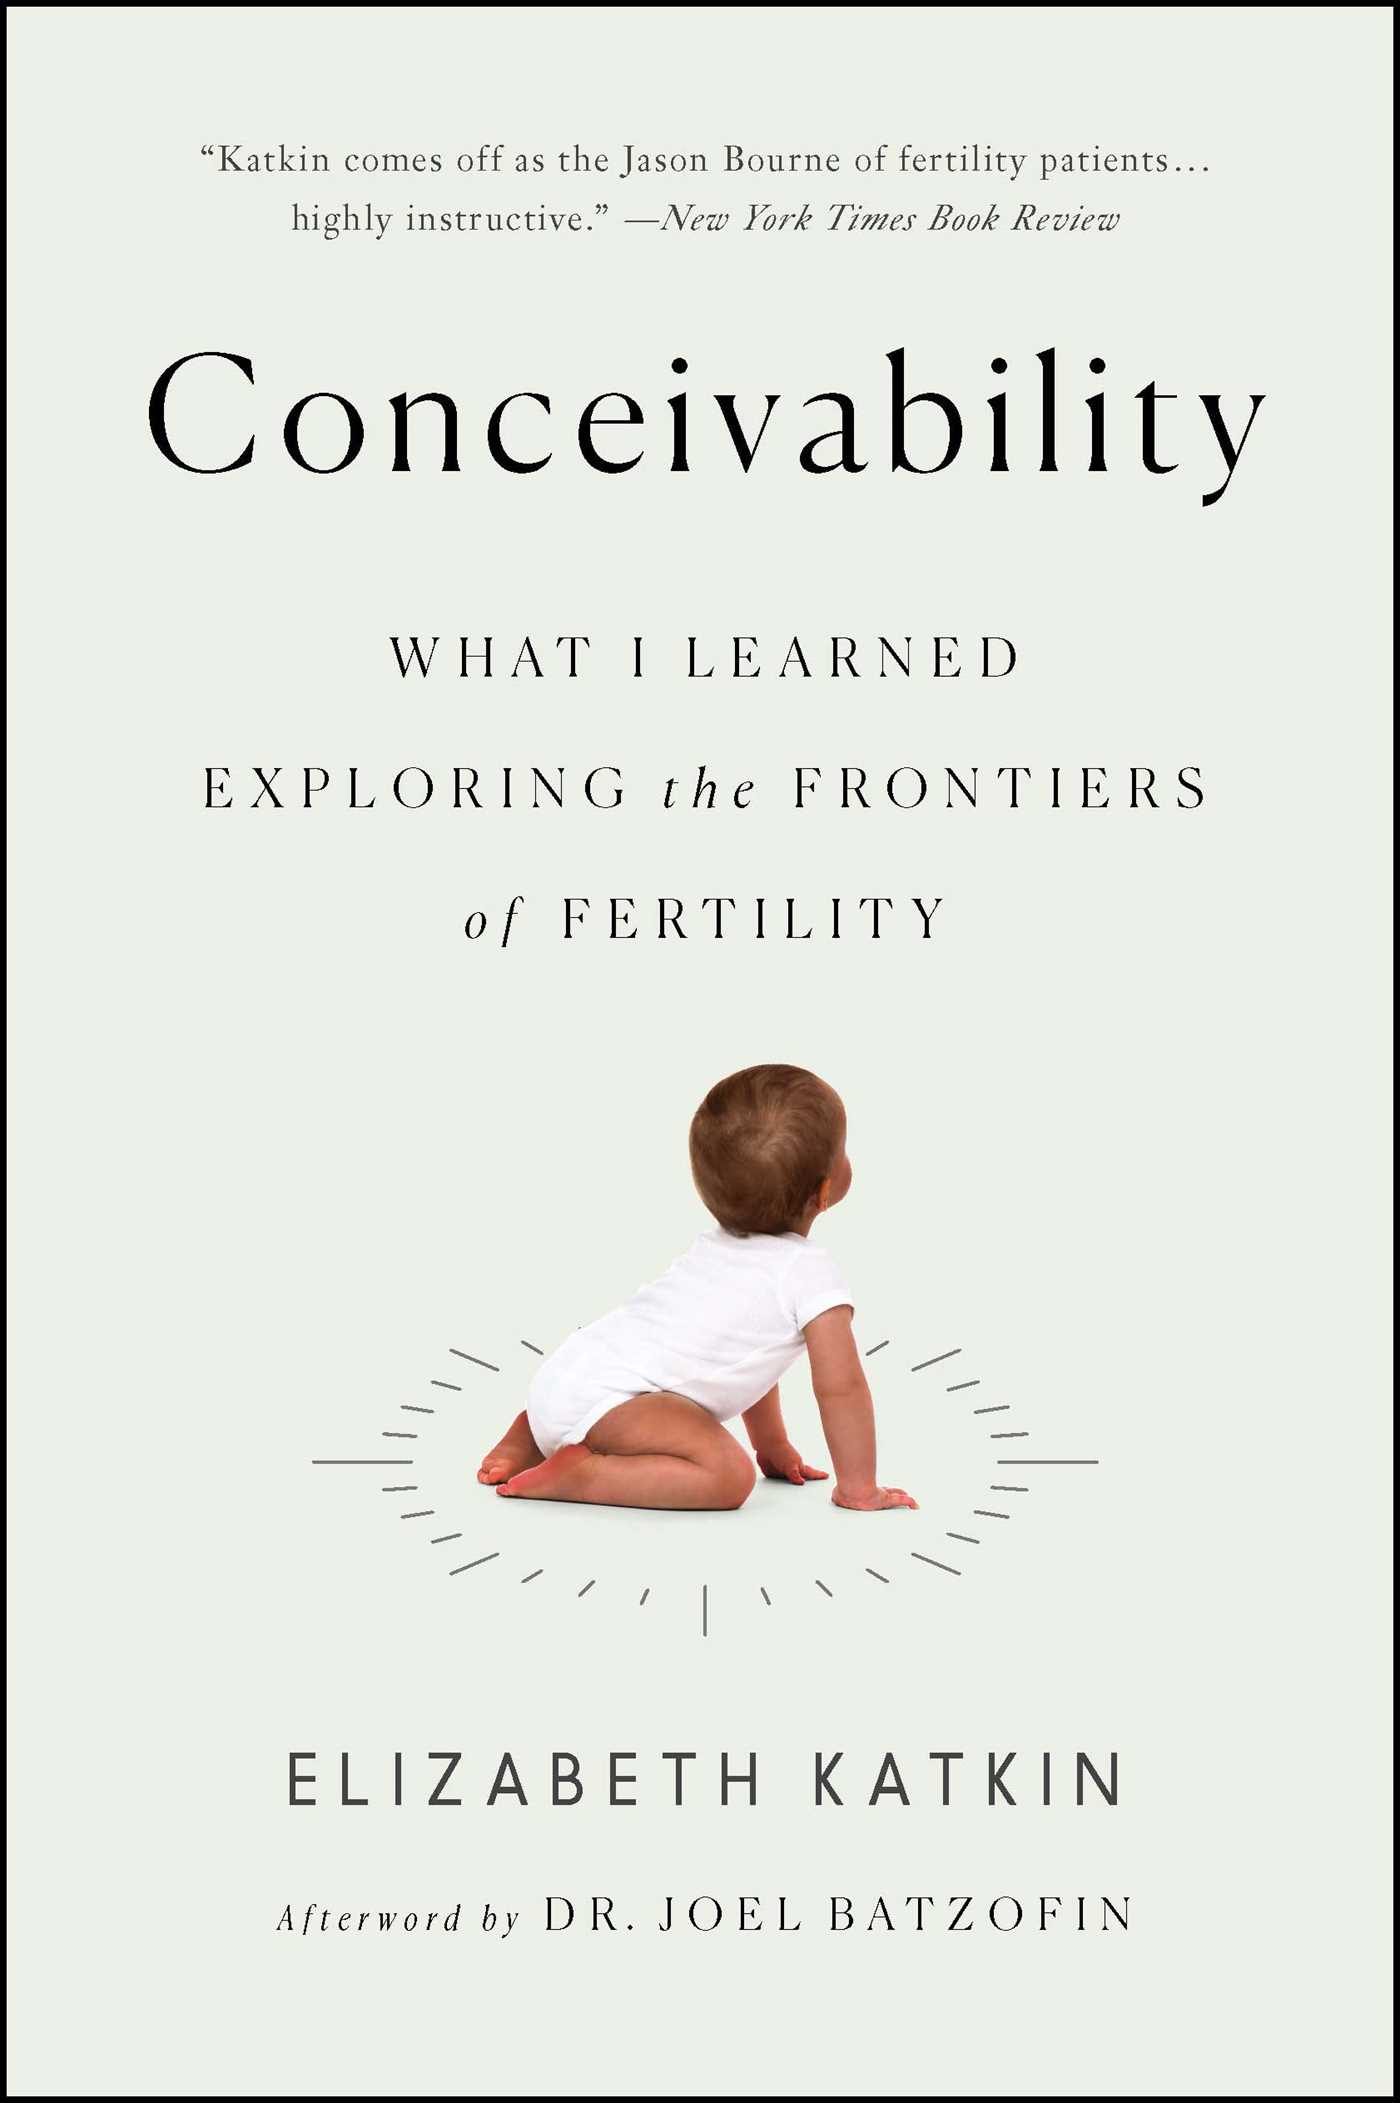 Conceivability   Book by Elizabeth Katkin   Official Publisher Page